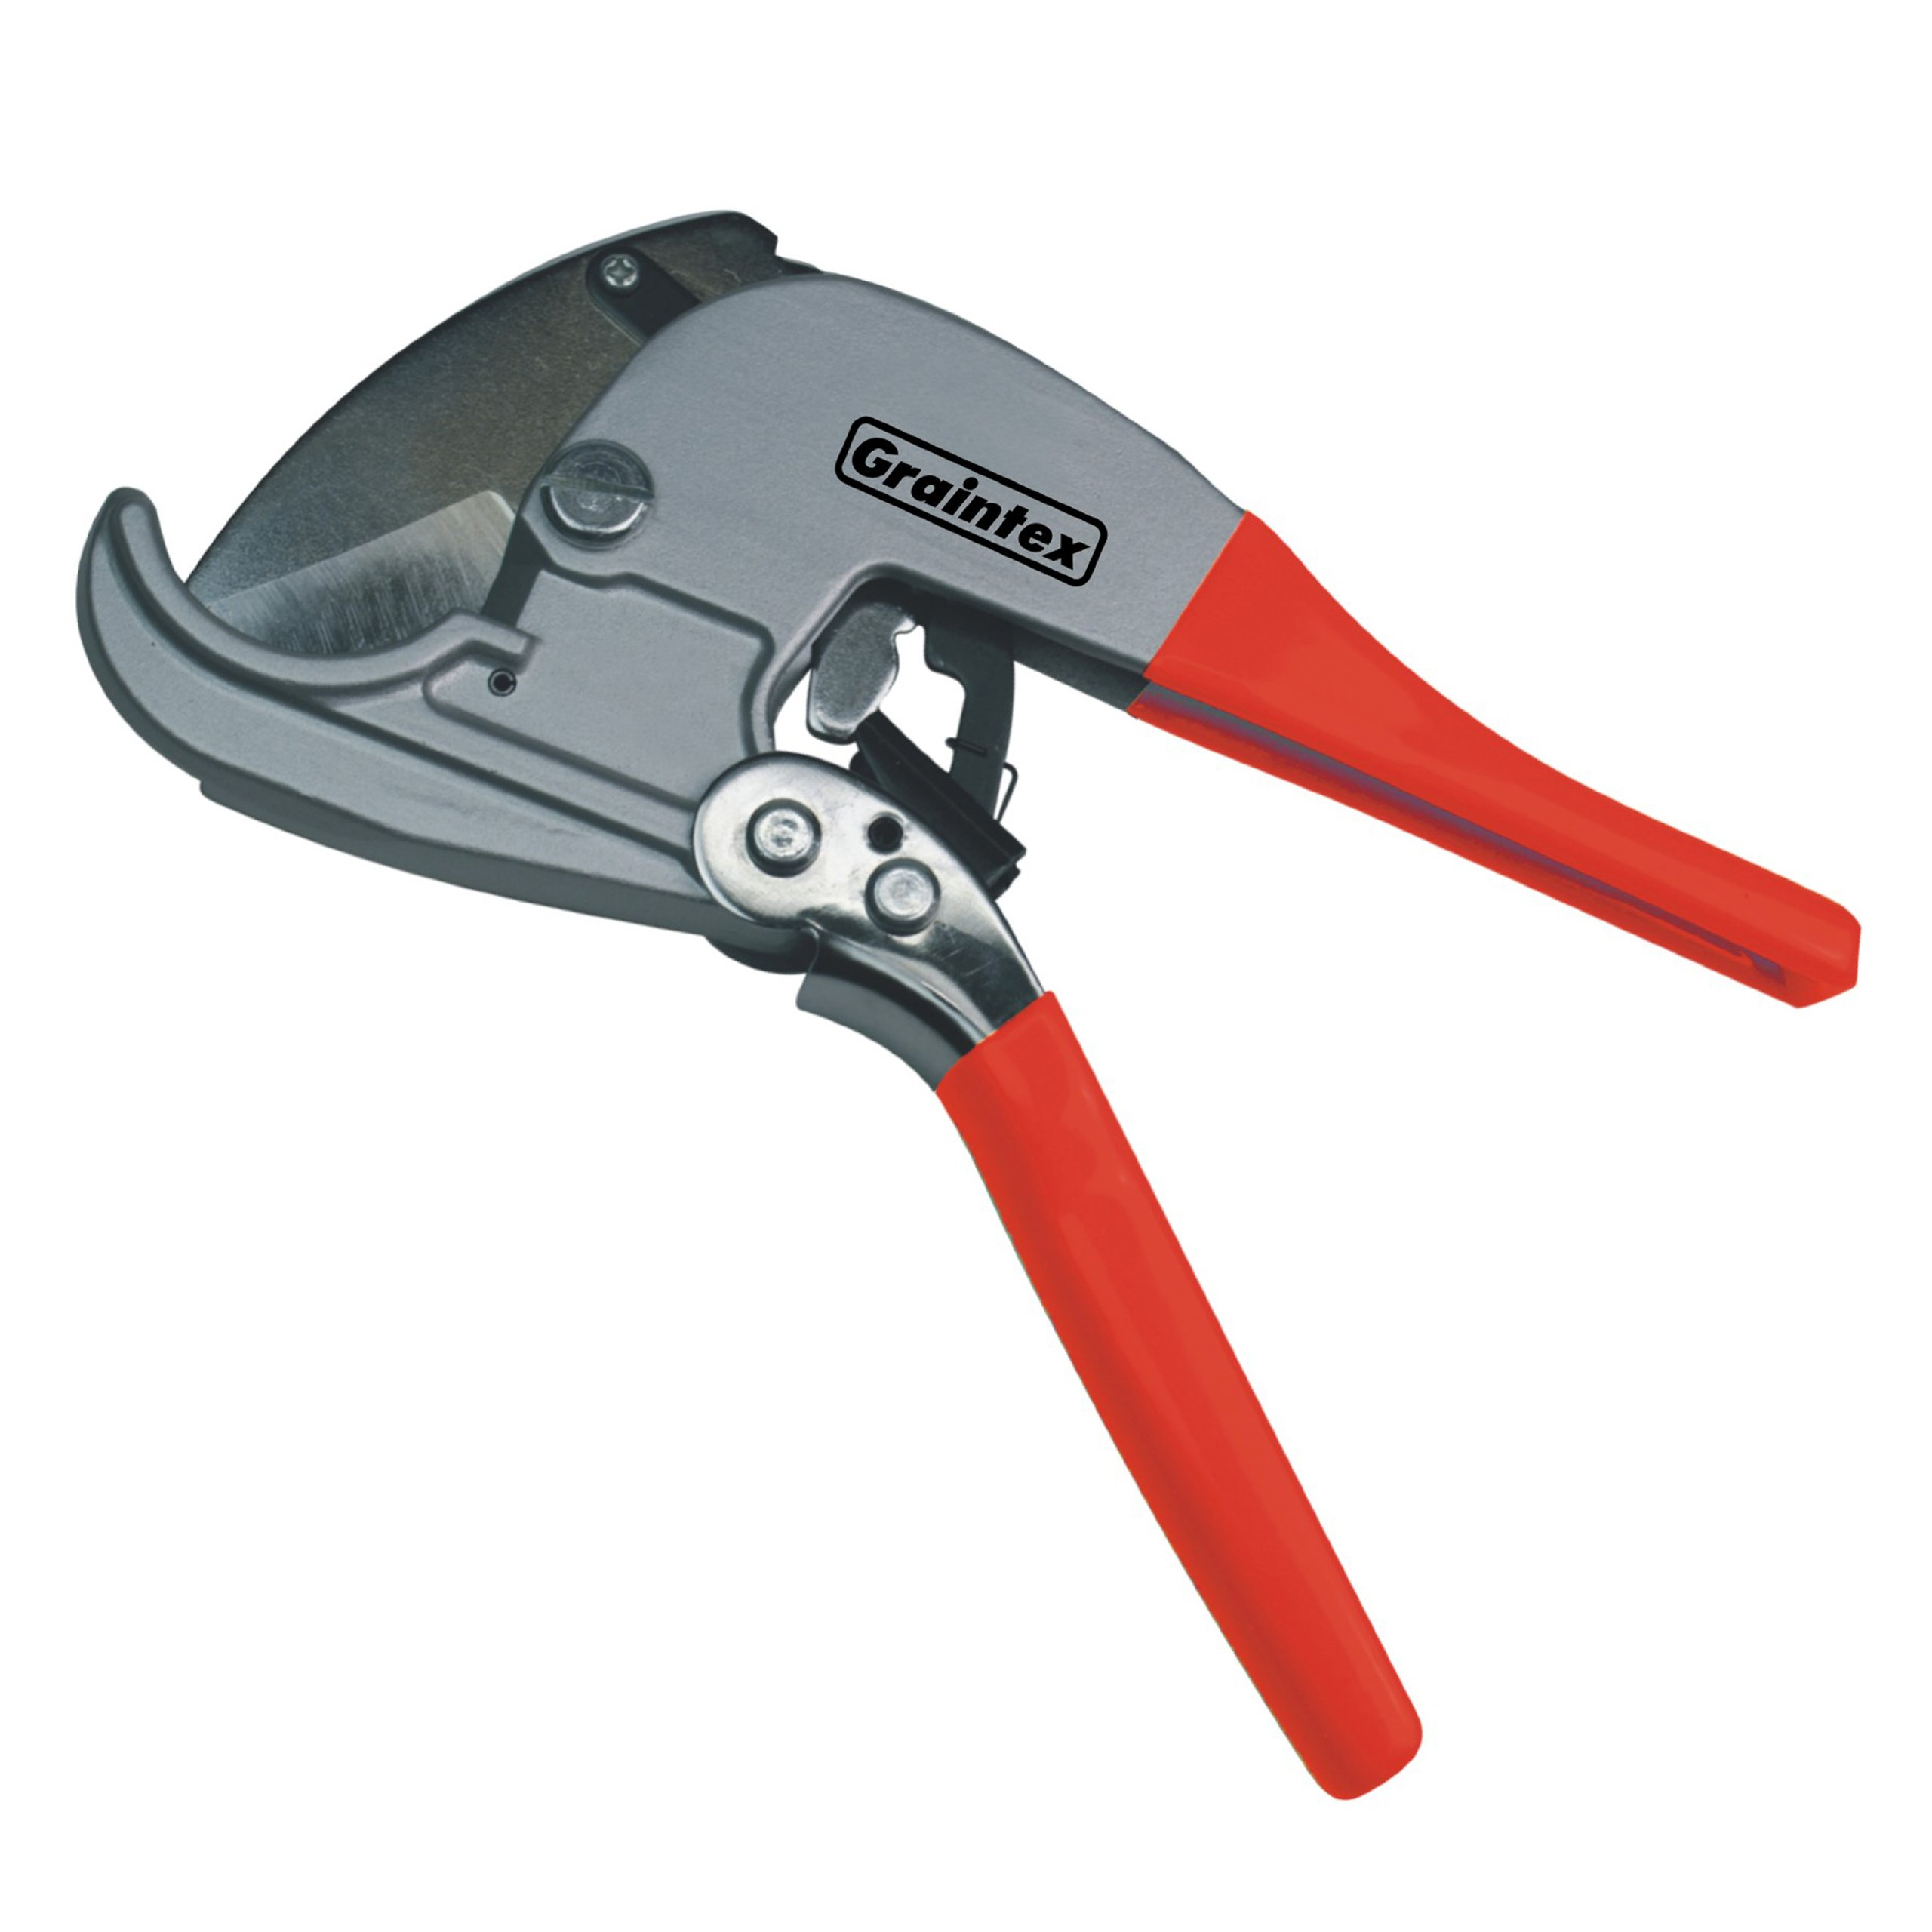 Graintex PC1801 Professional PVC Pipe Cutter